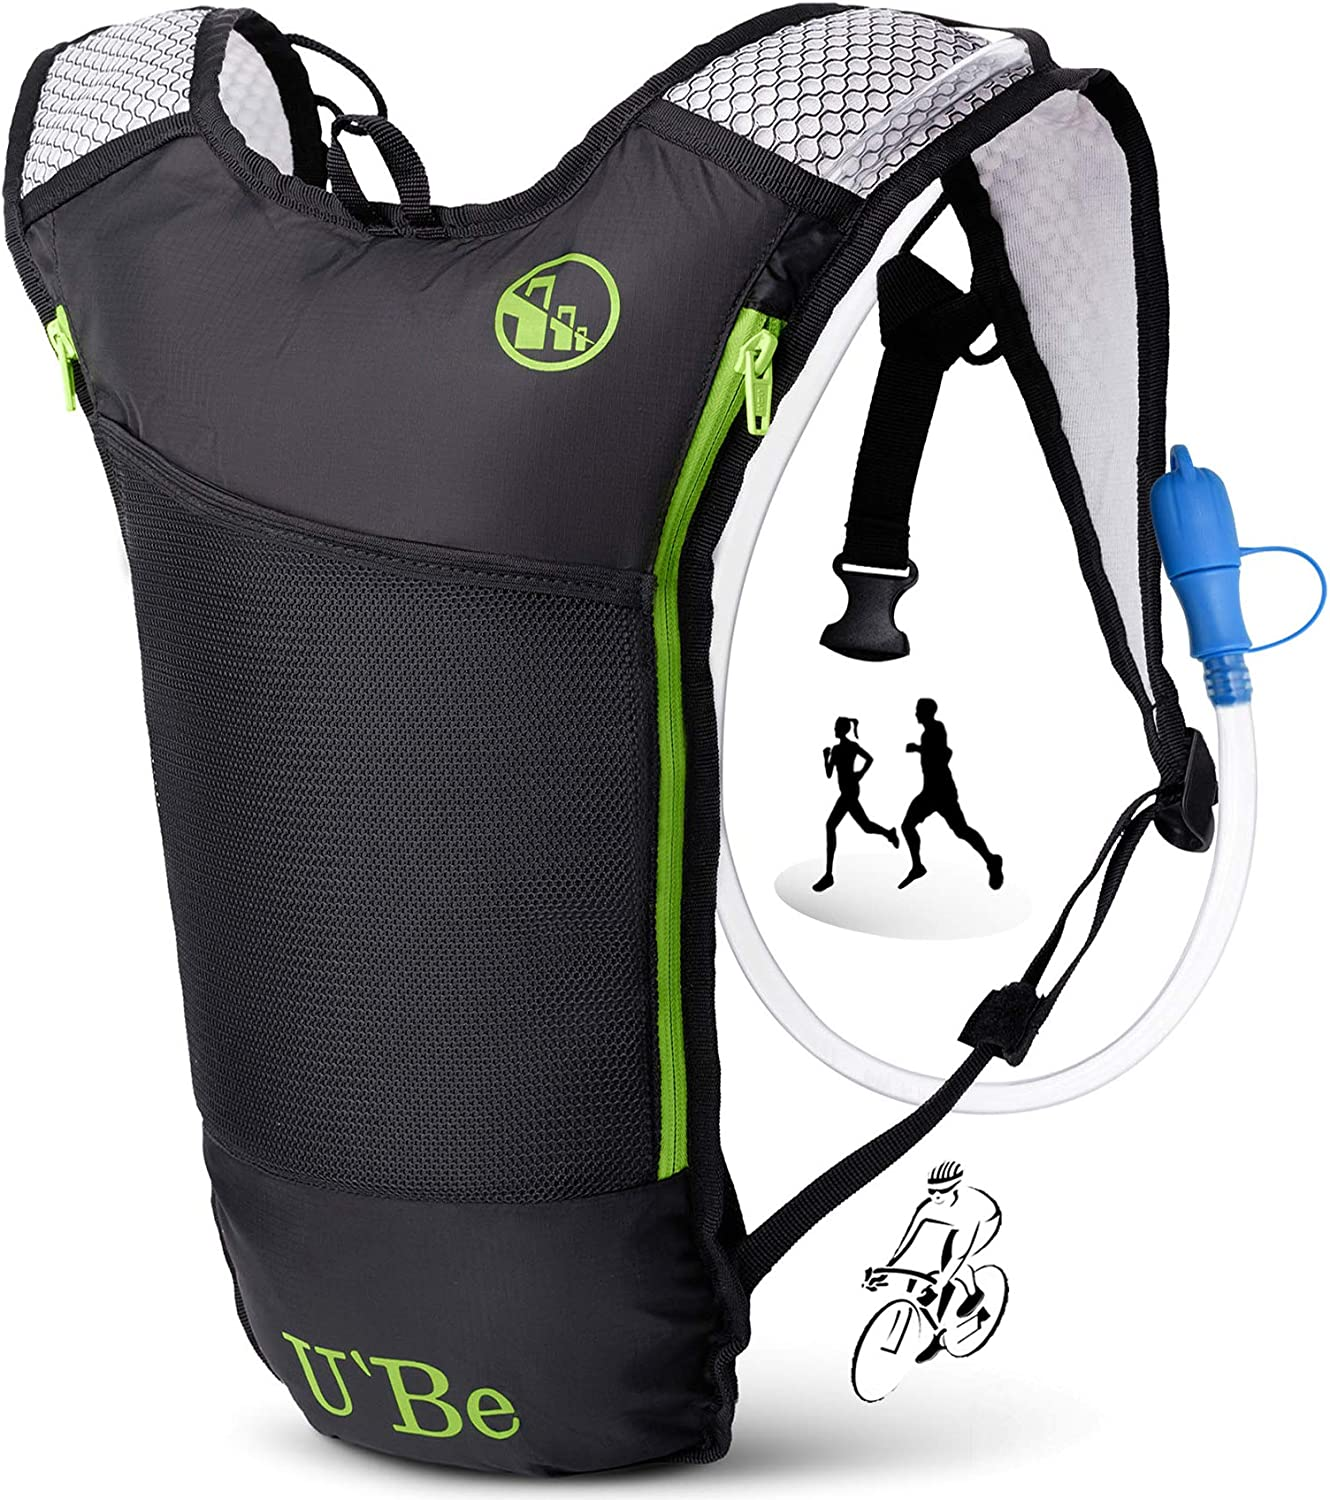 U Be Hydration Pack Water Backpack – Camelback for Running Hiking Biking – Camel Backpack with 2l Water Bladder